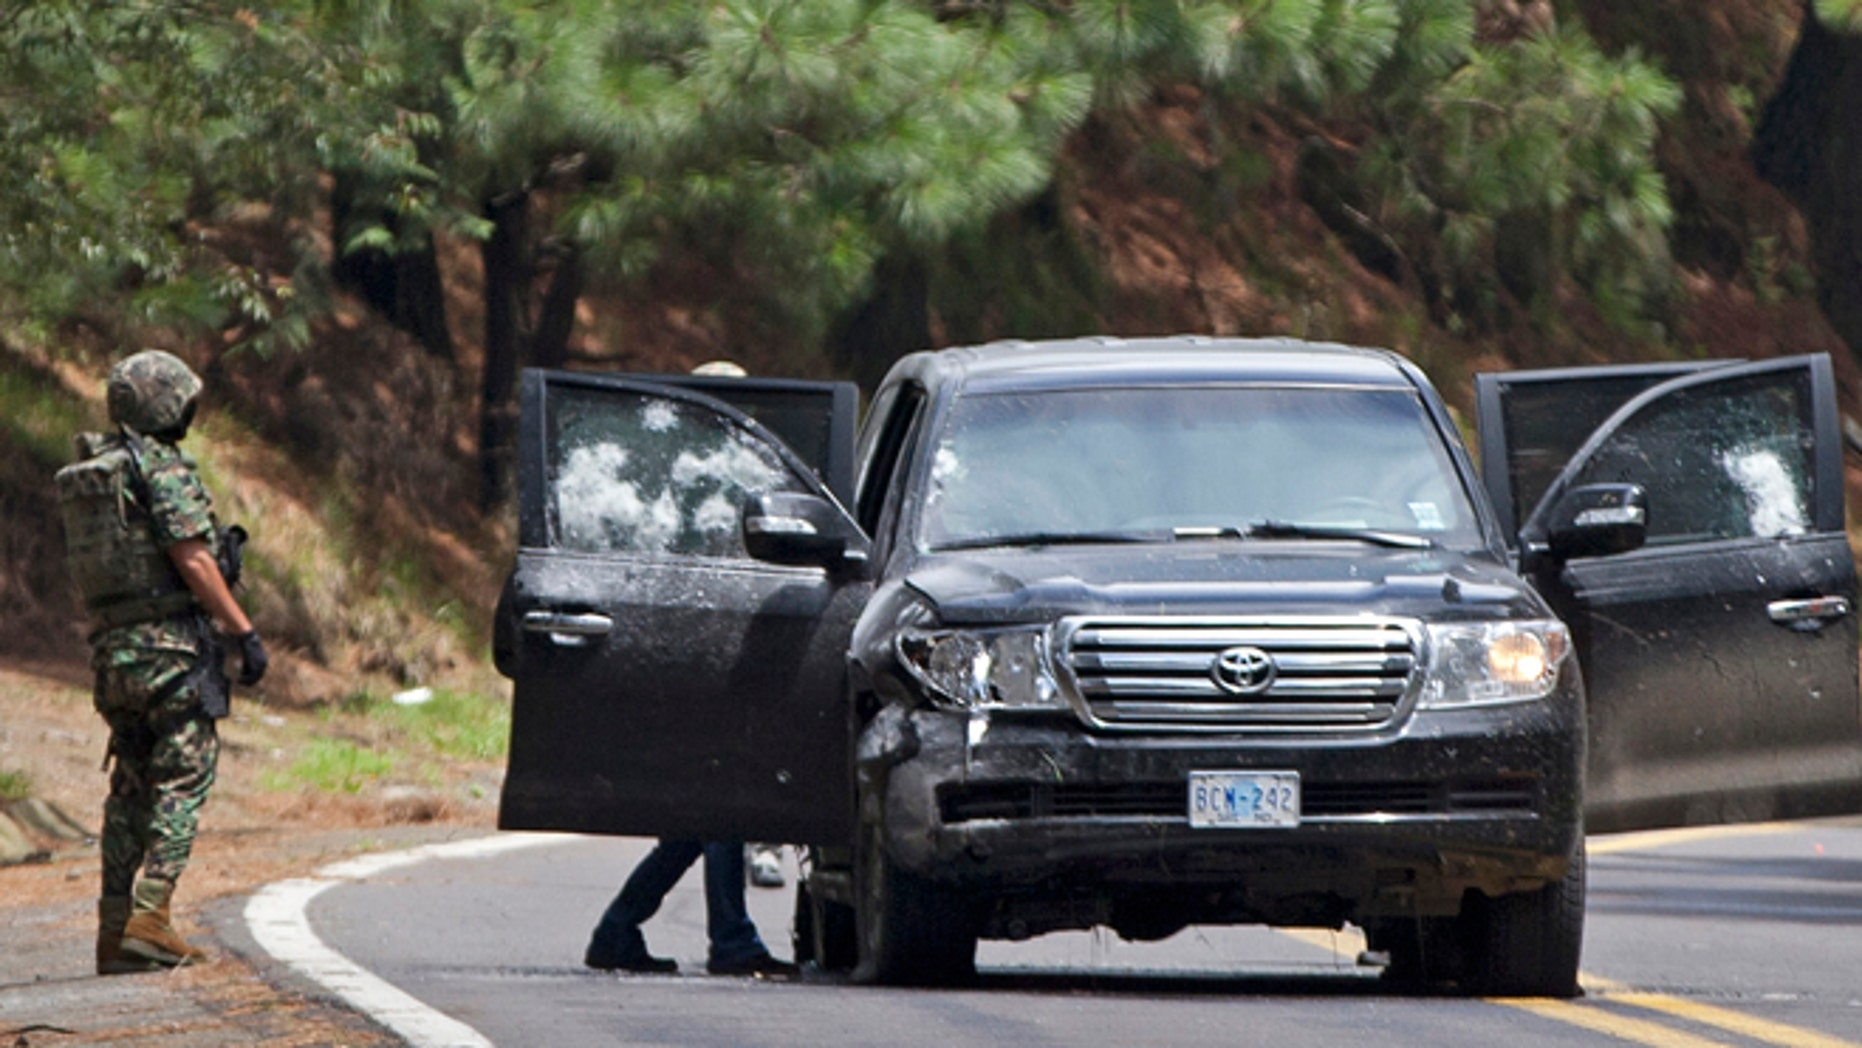 An armored U.S. Embassy vehicle is checked by military personal after it was attacked near Tres Marias, Mexico, in August. (AP)